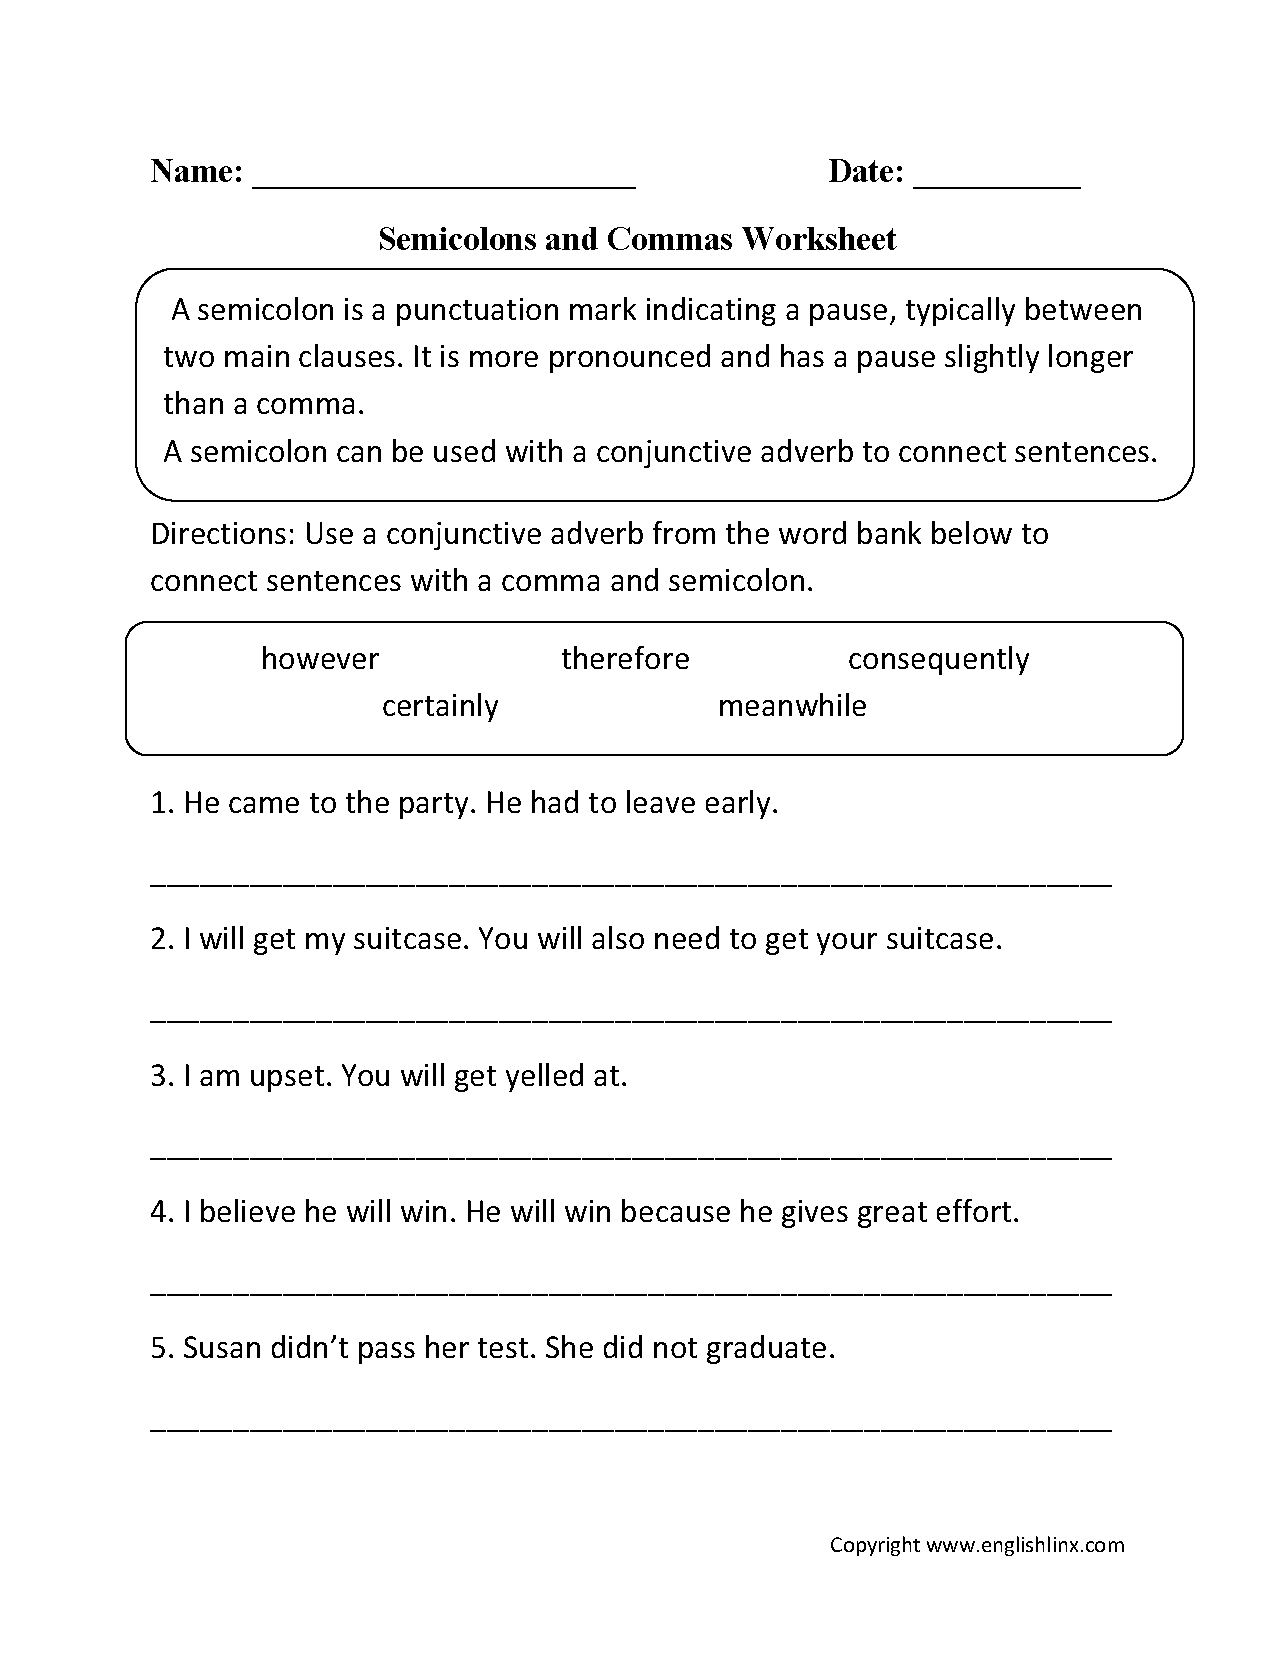 small resolution of Semicolon and Commas Worksheet   Punctuation worksheets